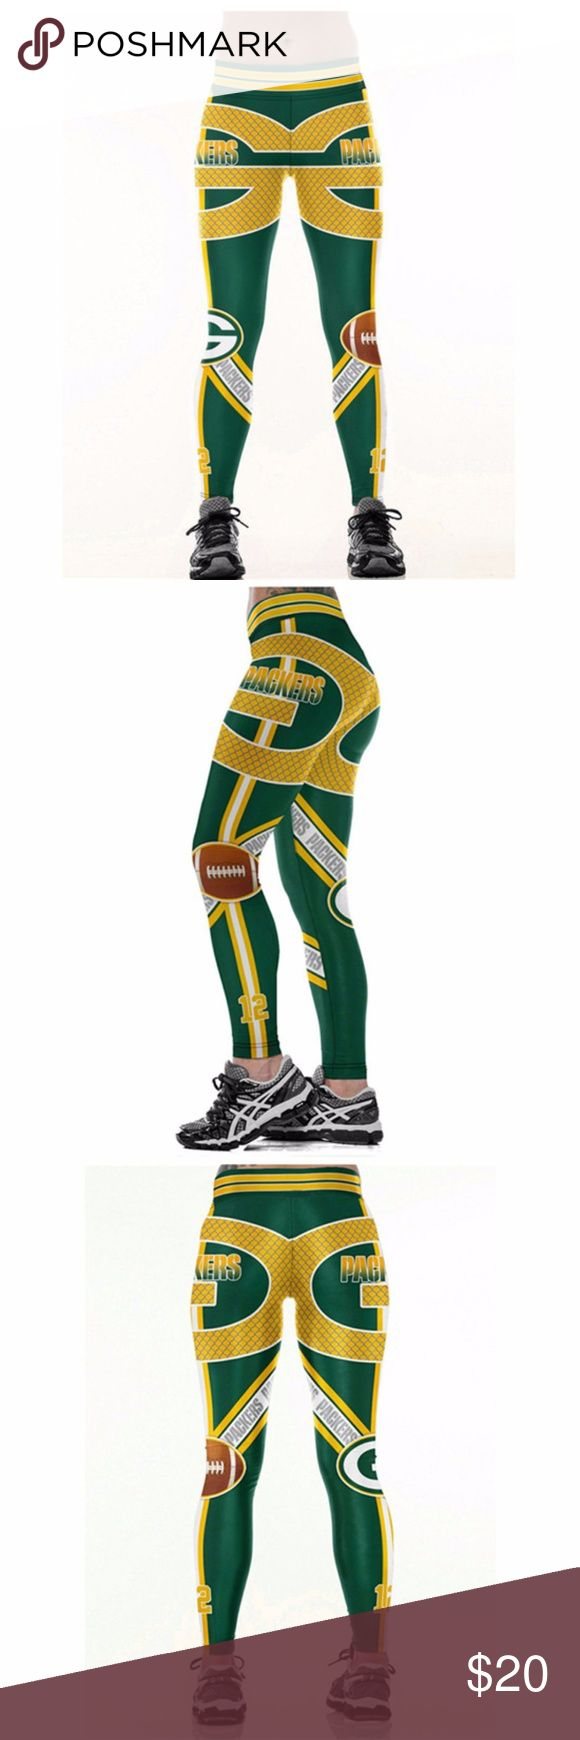 GreenBay Packers Leggings Lightweight soft- quick dry breathable fabric Suitable for any kind of workout, gym, yoga, Zumba, cycling, etc. or casual wear High-quality construction with 6-thread double lock stitch seams Four-way Stretch Material: 82% Polyester, 18% Spandex Pants Leggings